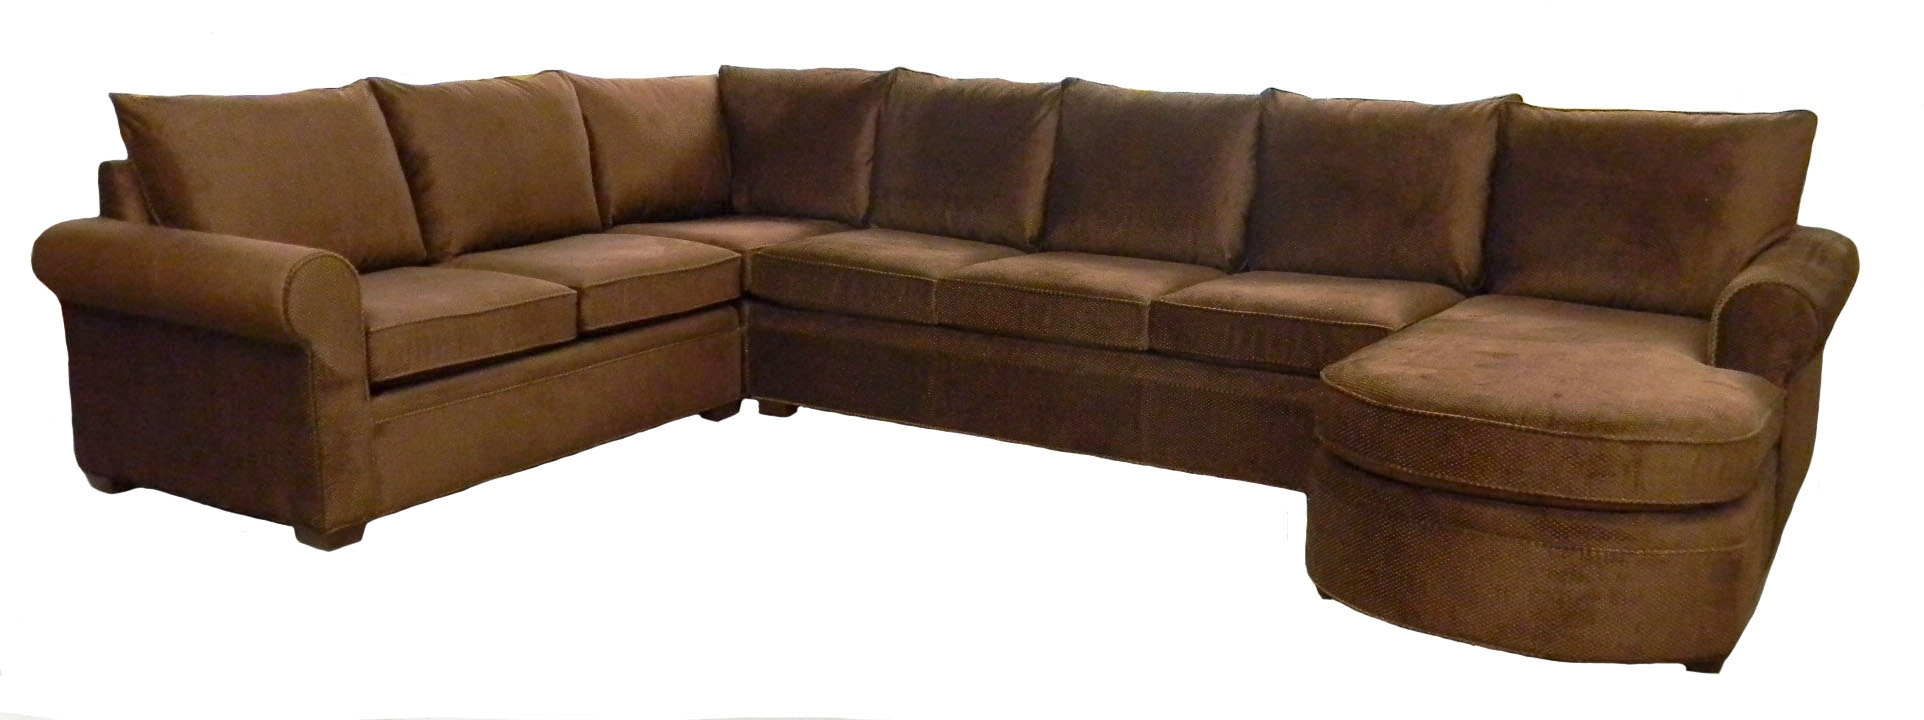 Photos Examples Custom Sectional Sofas Carolina Chair Furniture Pertaining To 7 Seat Sectional Sofa (#10 of 12)